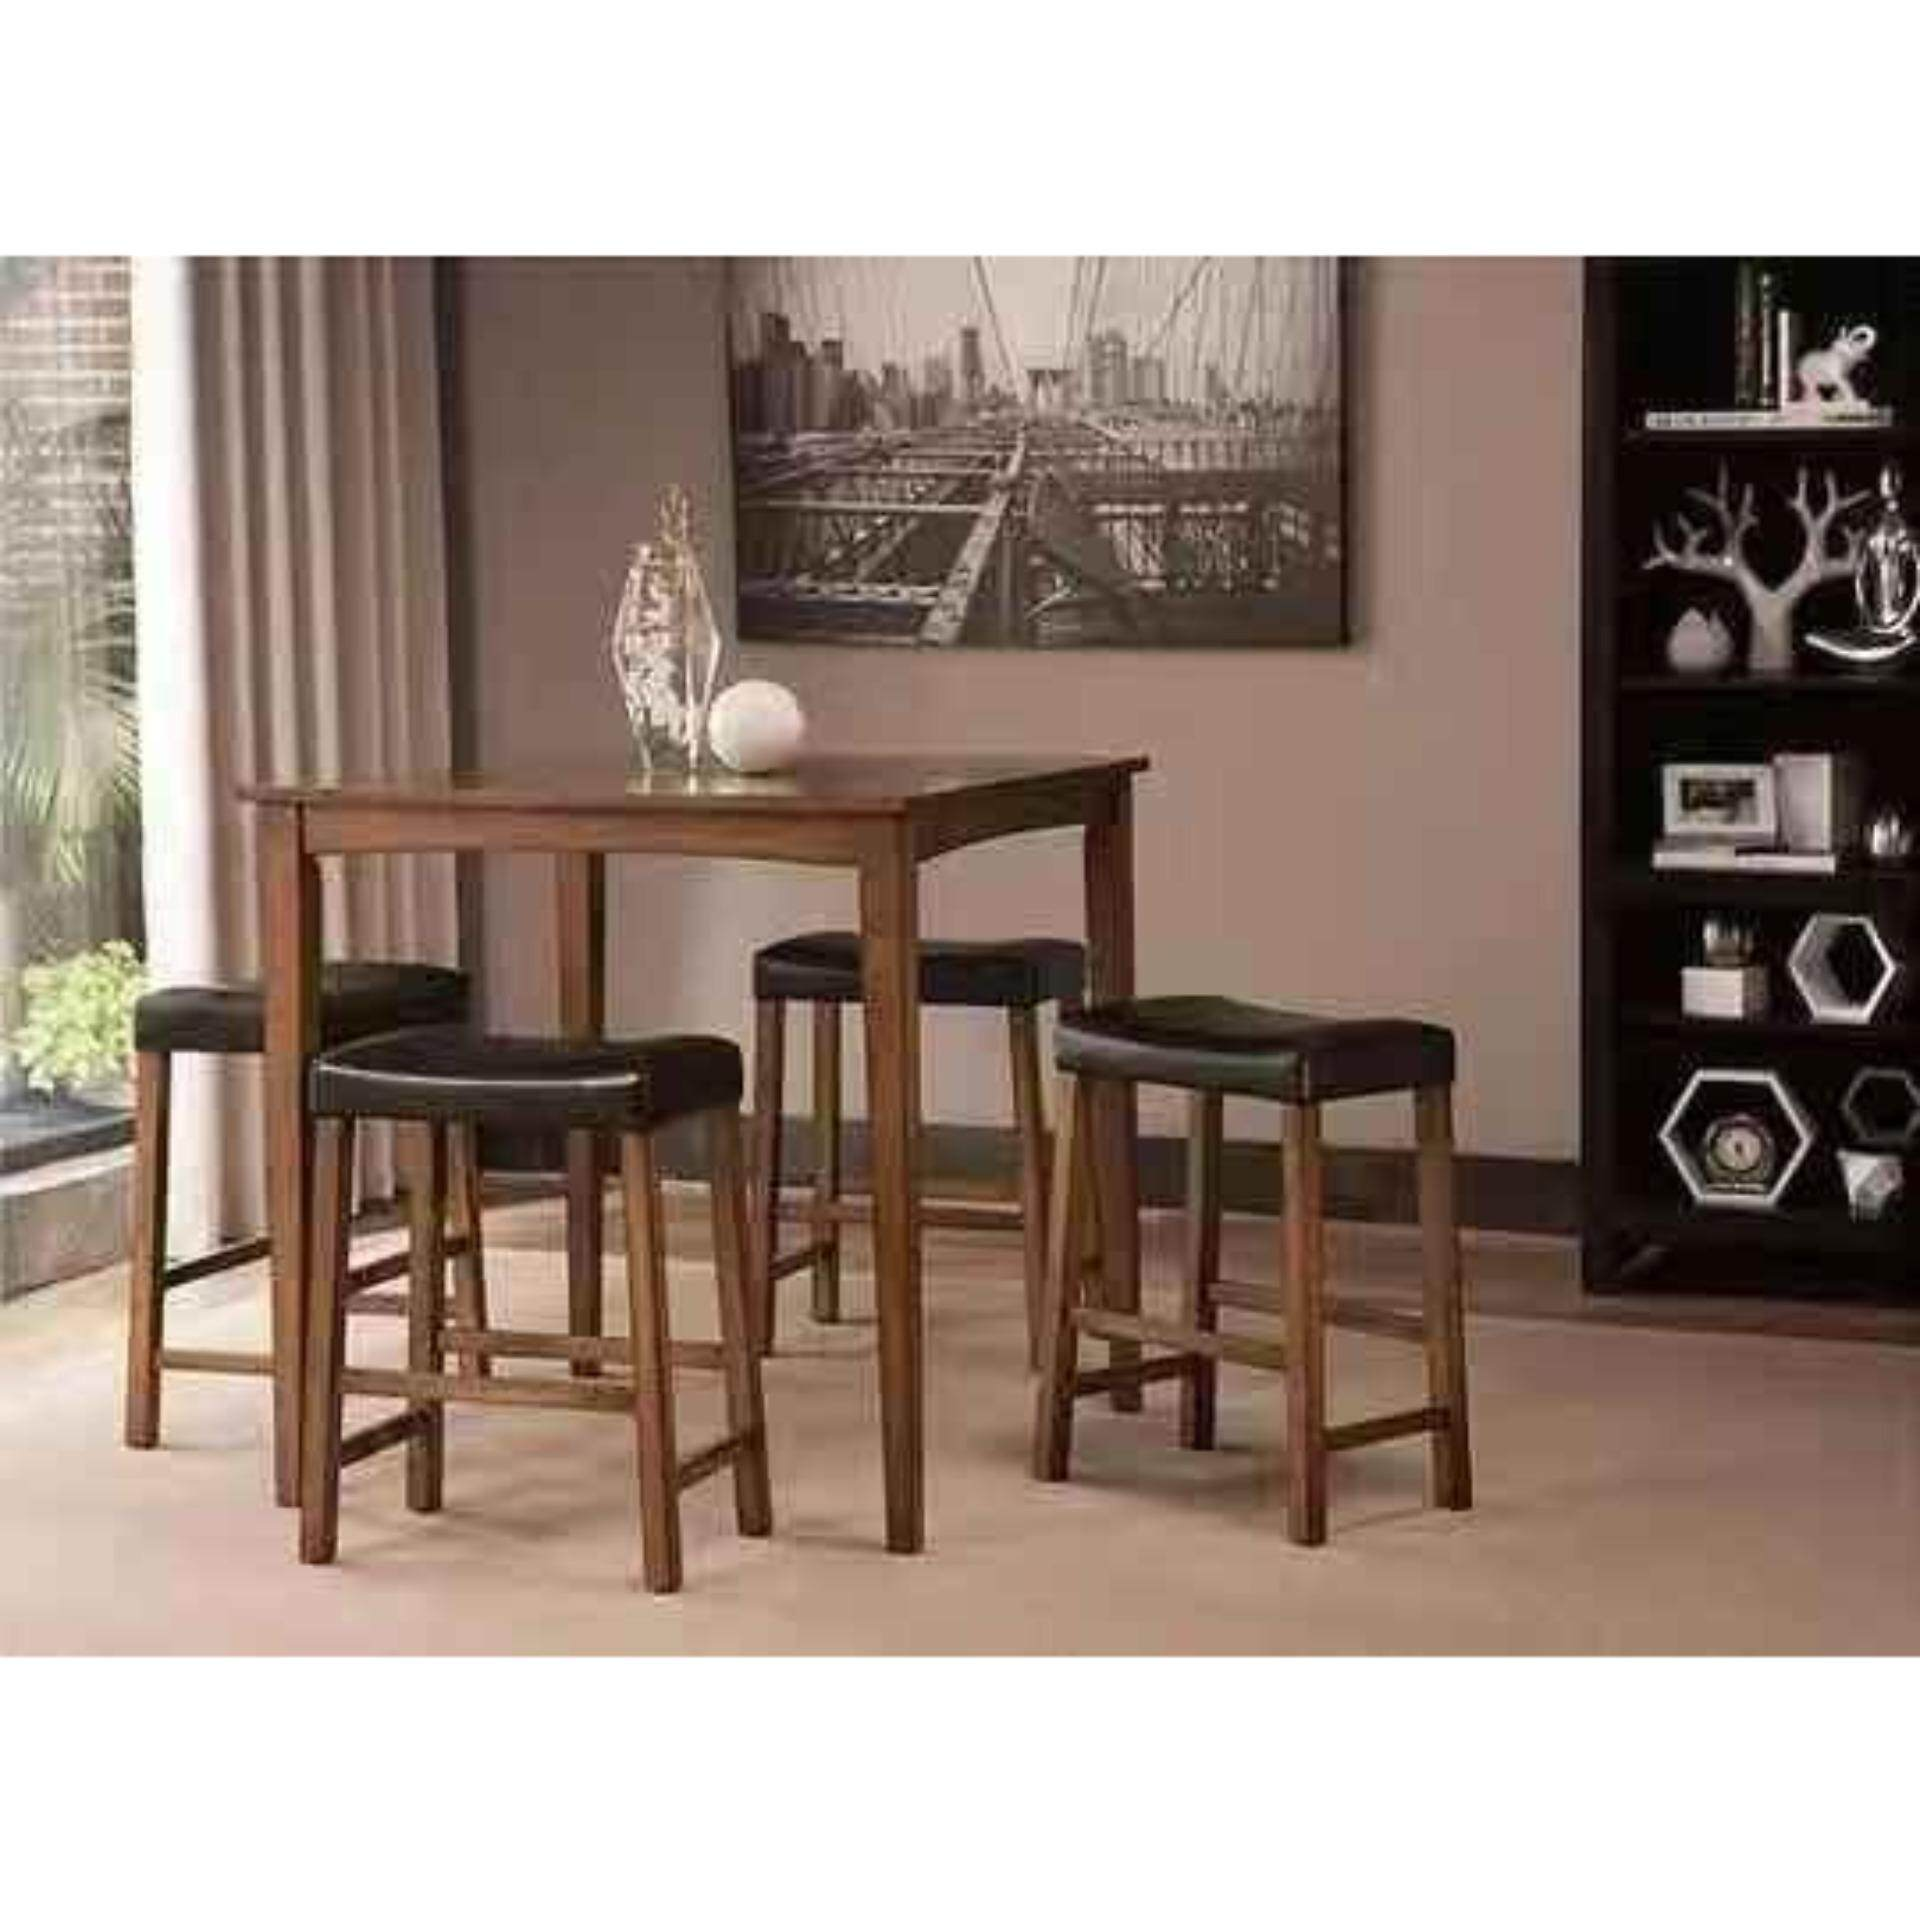 Harga Kitchen Set Mini Bar Export Grade 5 Piece Breakfast Table And Stools Set In Nut Brown Kitchen Counter Height Dining Set Table Chair